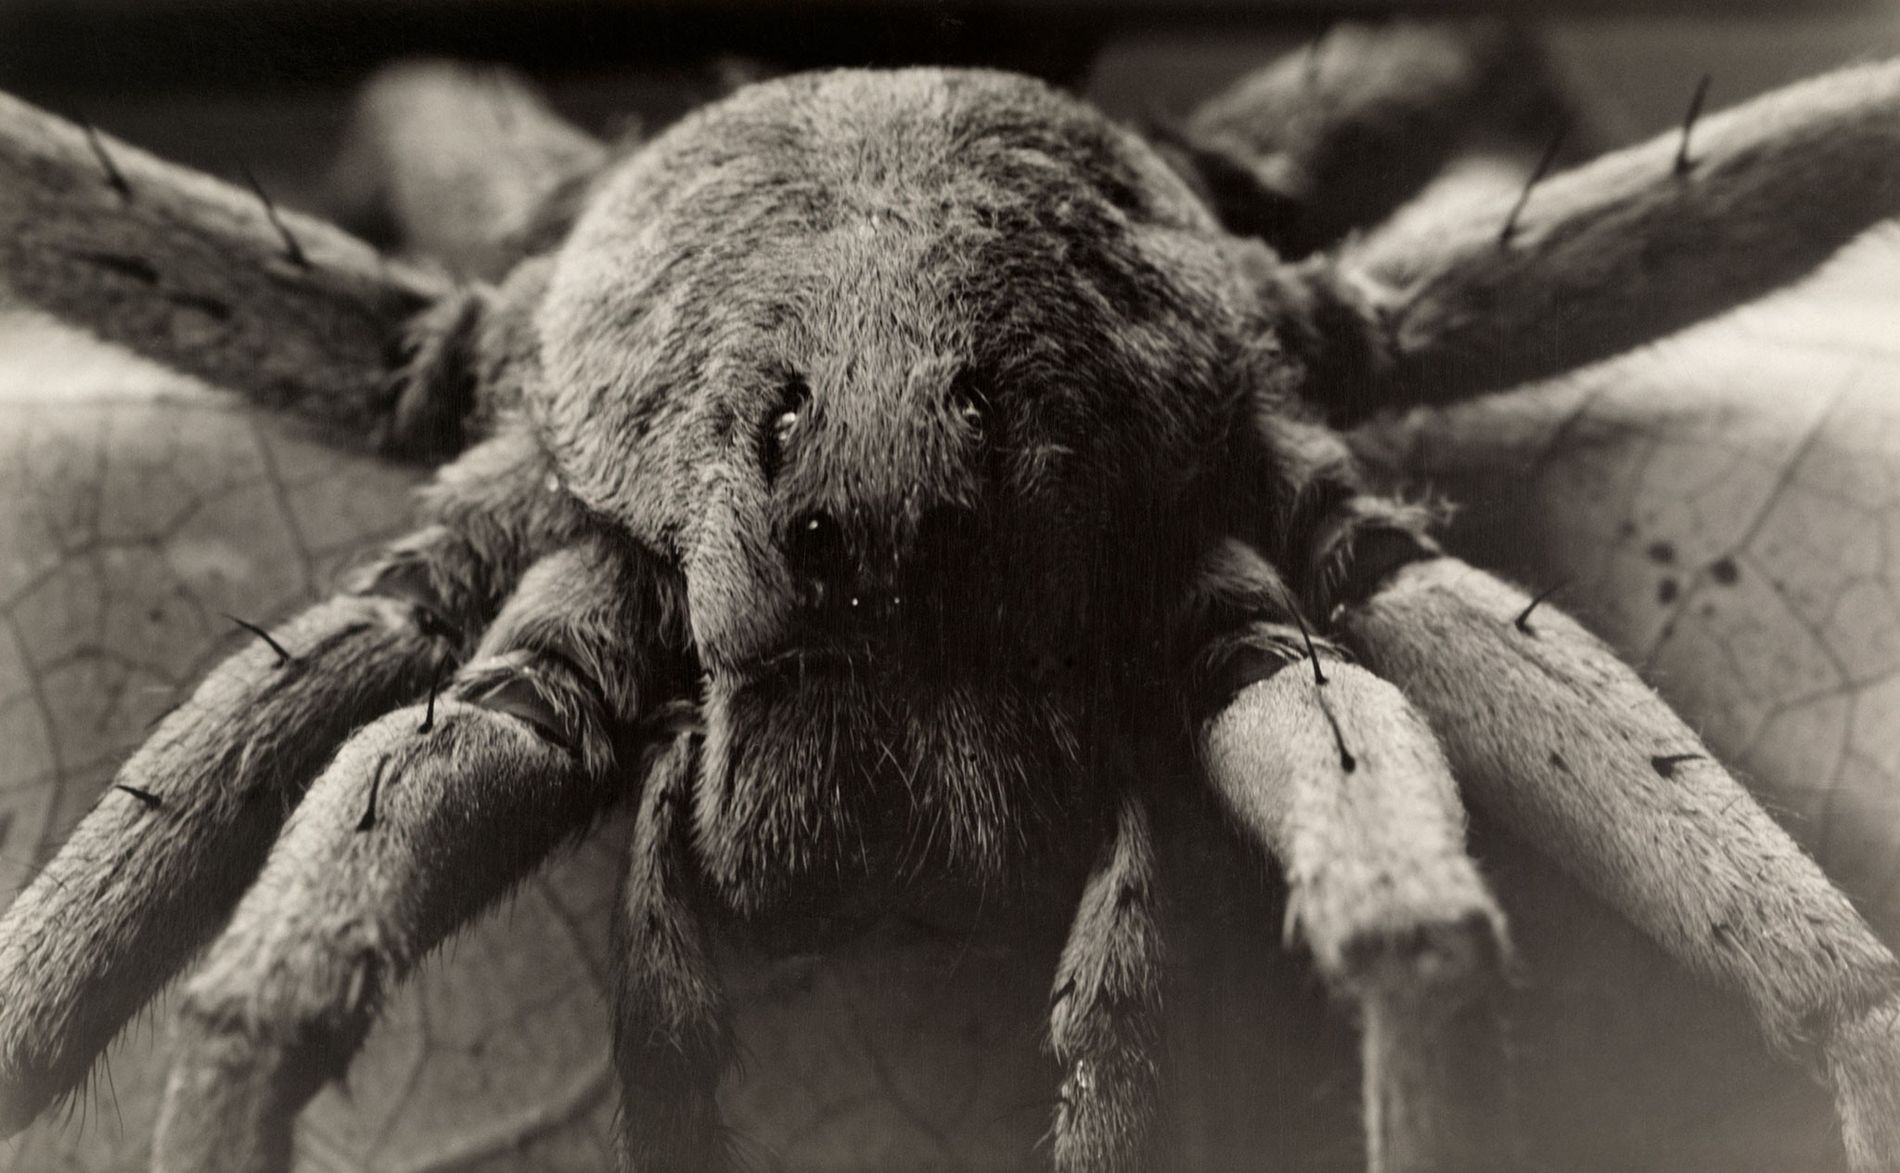 Vintage Photos of Insects and Spiders in Vivid Detail